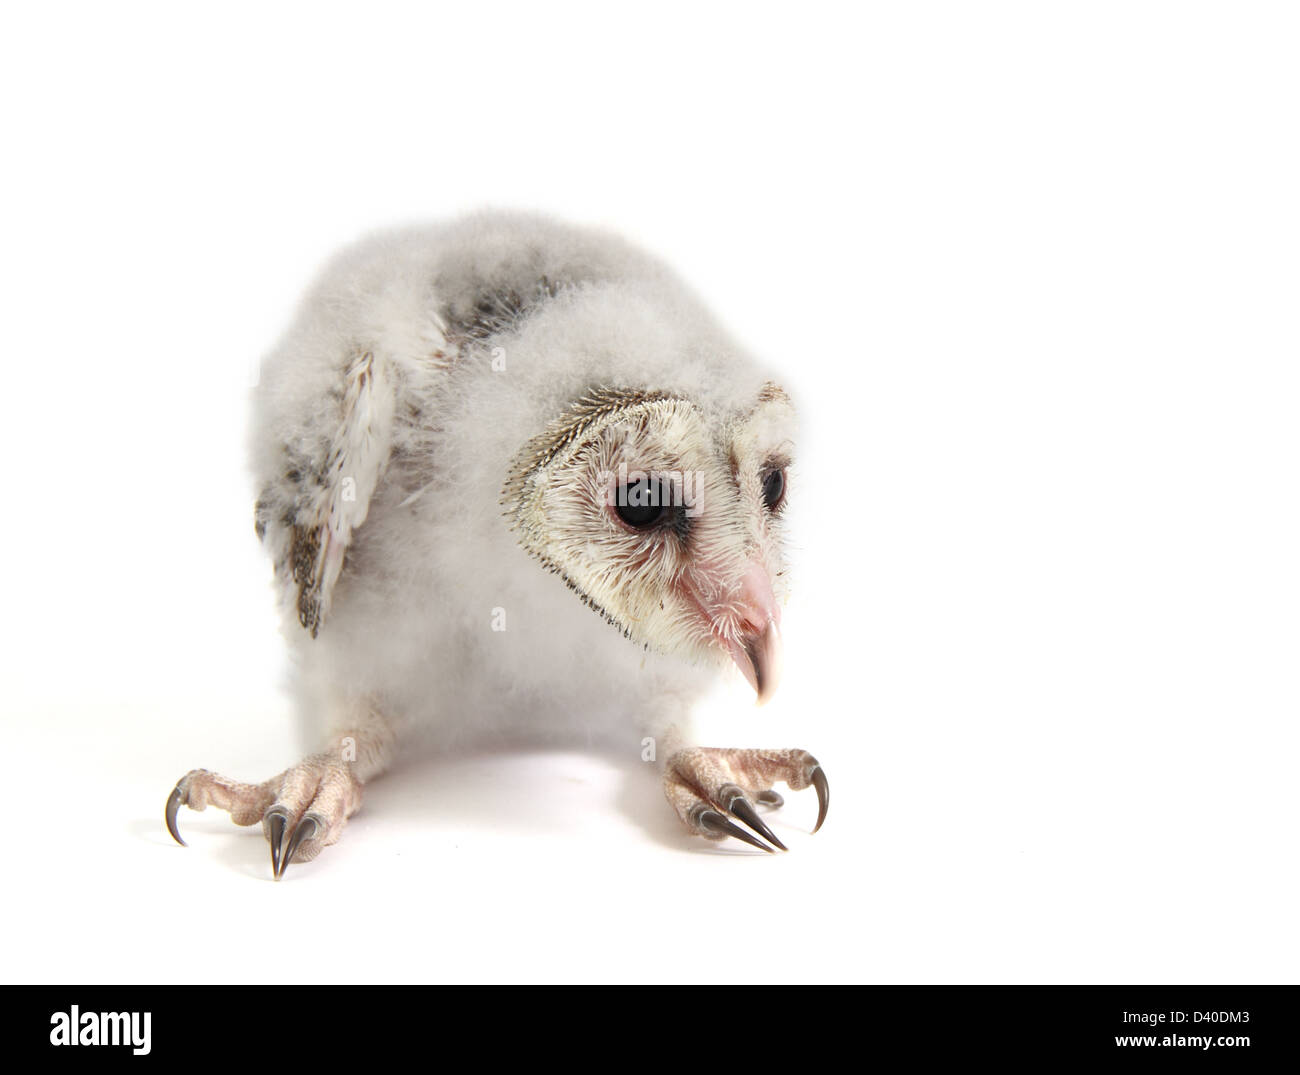 barn owl chick tyto alba photographed against a white background and prepared ready for cut-out - Stock Image